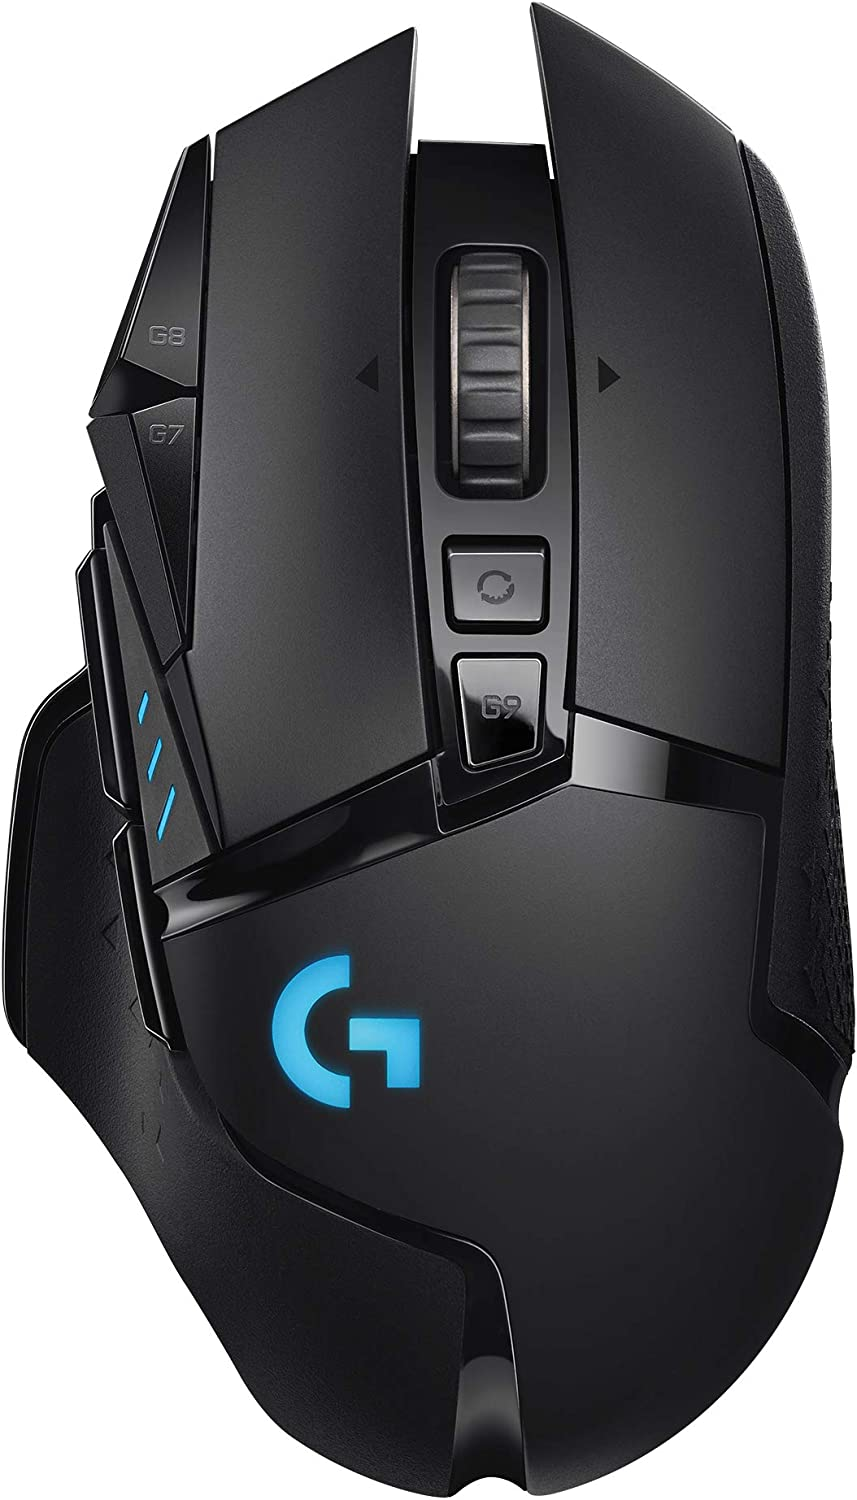 Best Mouse for Minecraft PVP Gaming 2021